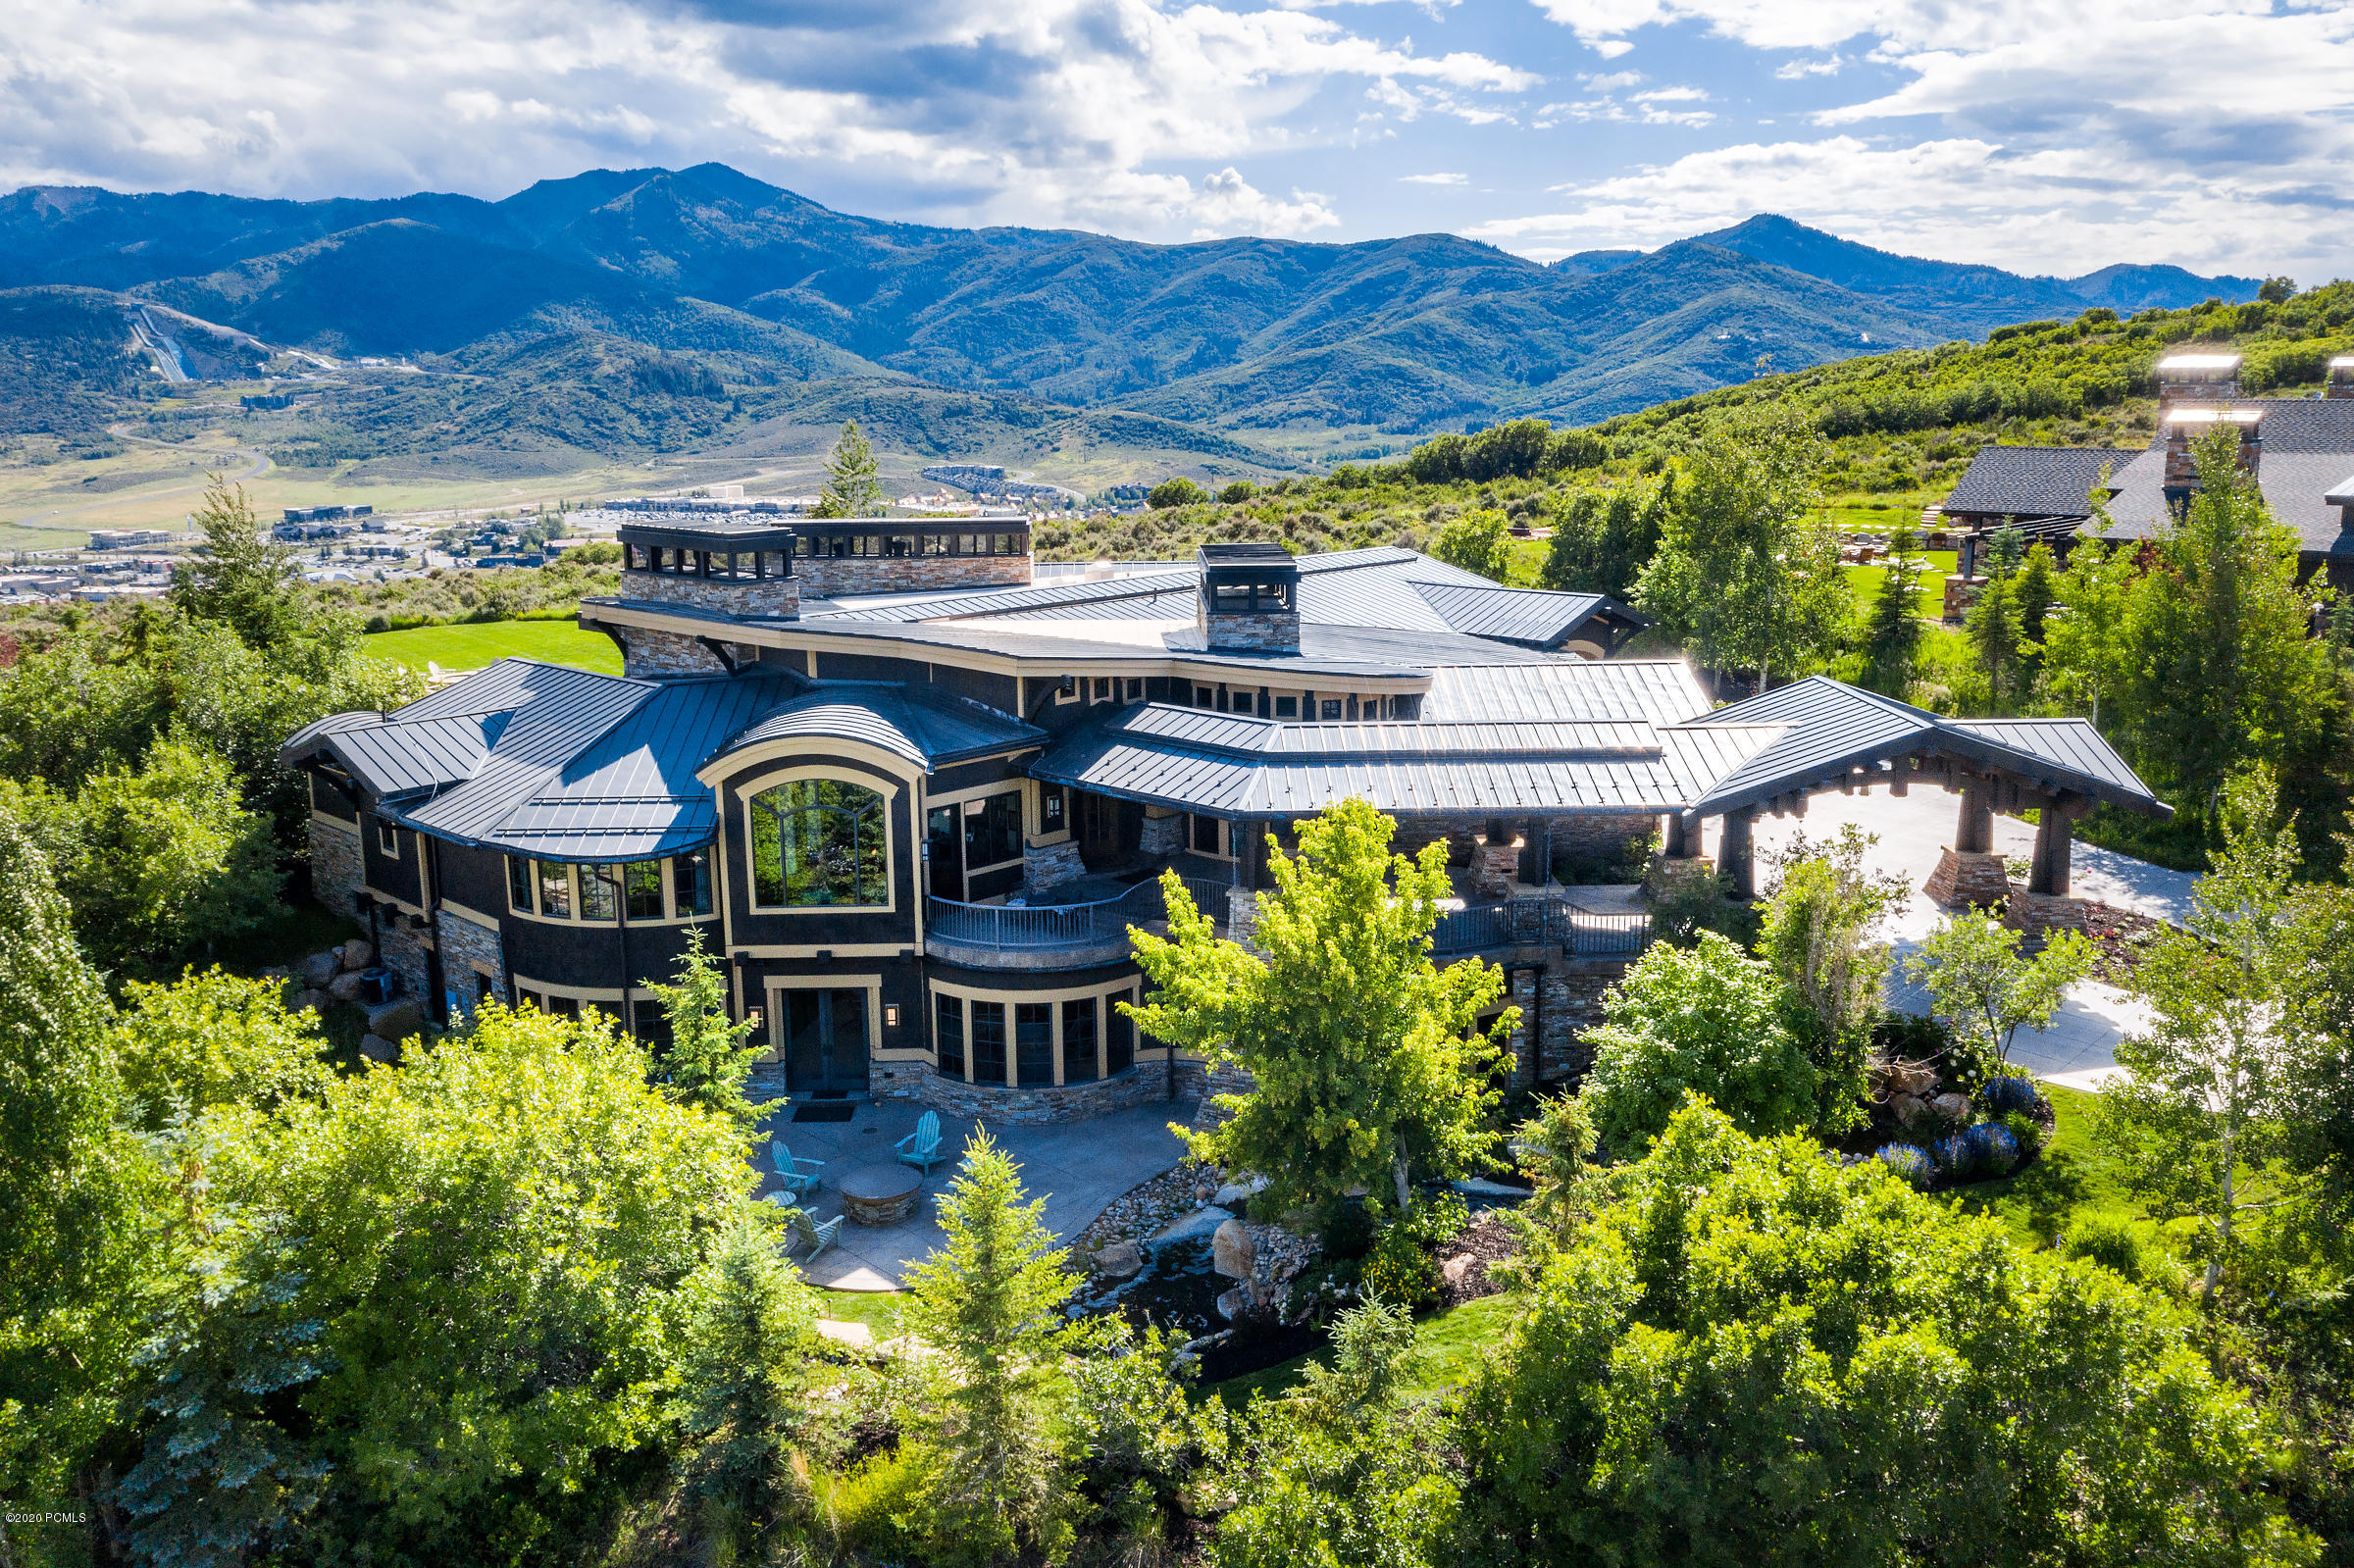 1133 Snow Berry Street, Park City, Utah 84098, 5 Bedrooms Bedrooms, ,7 BathroomsBathrooms,Single Family,For Sale,Snow Berry,20190109112430415765000000